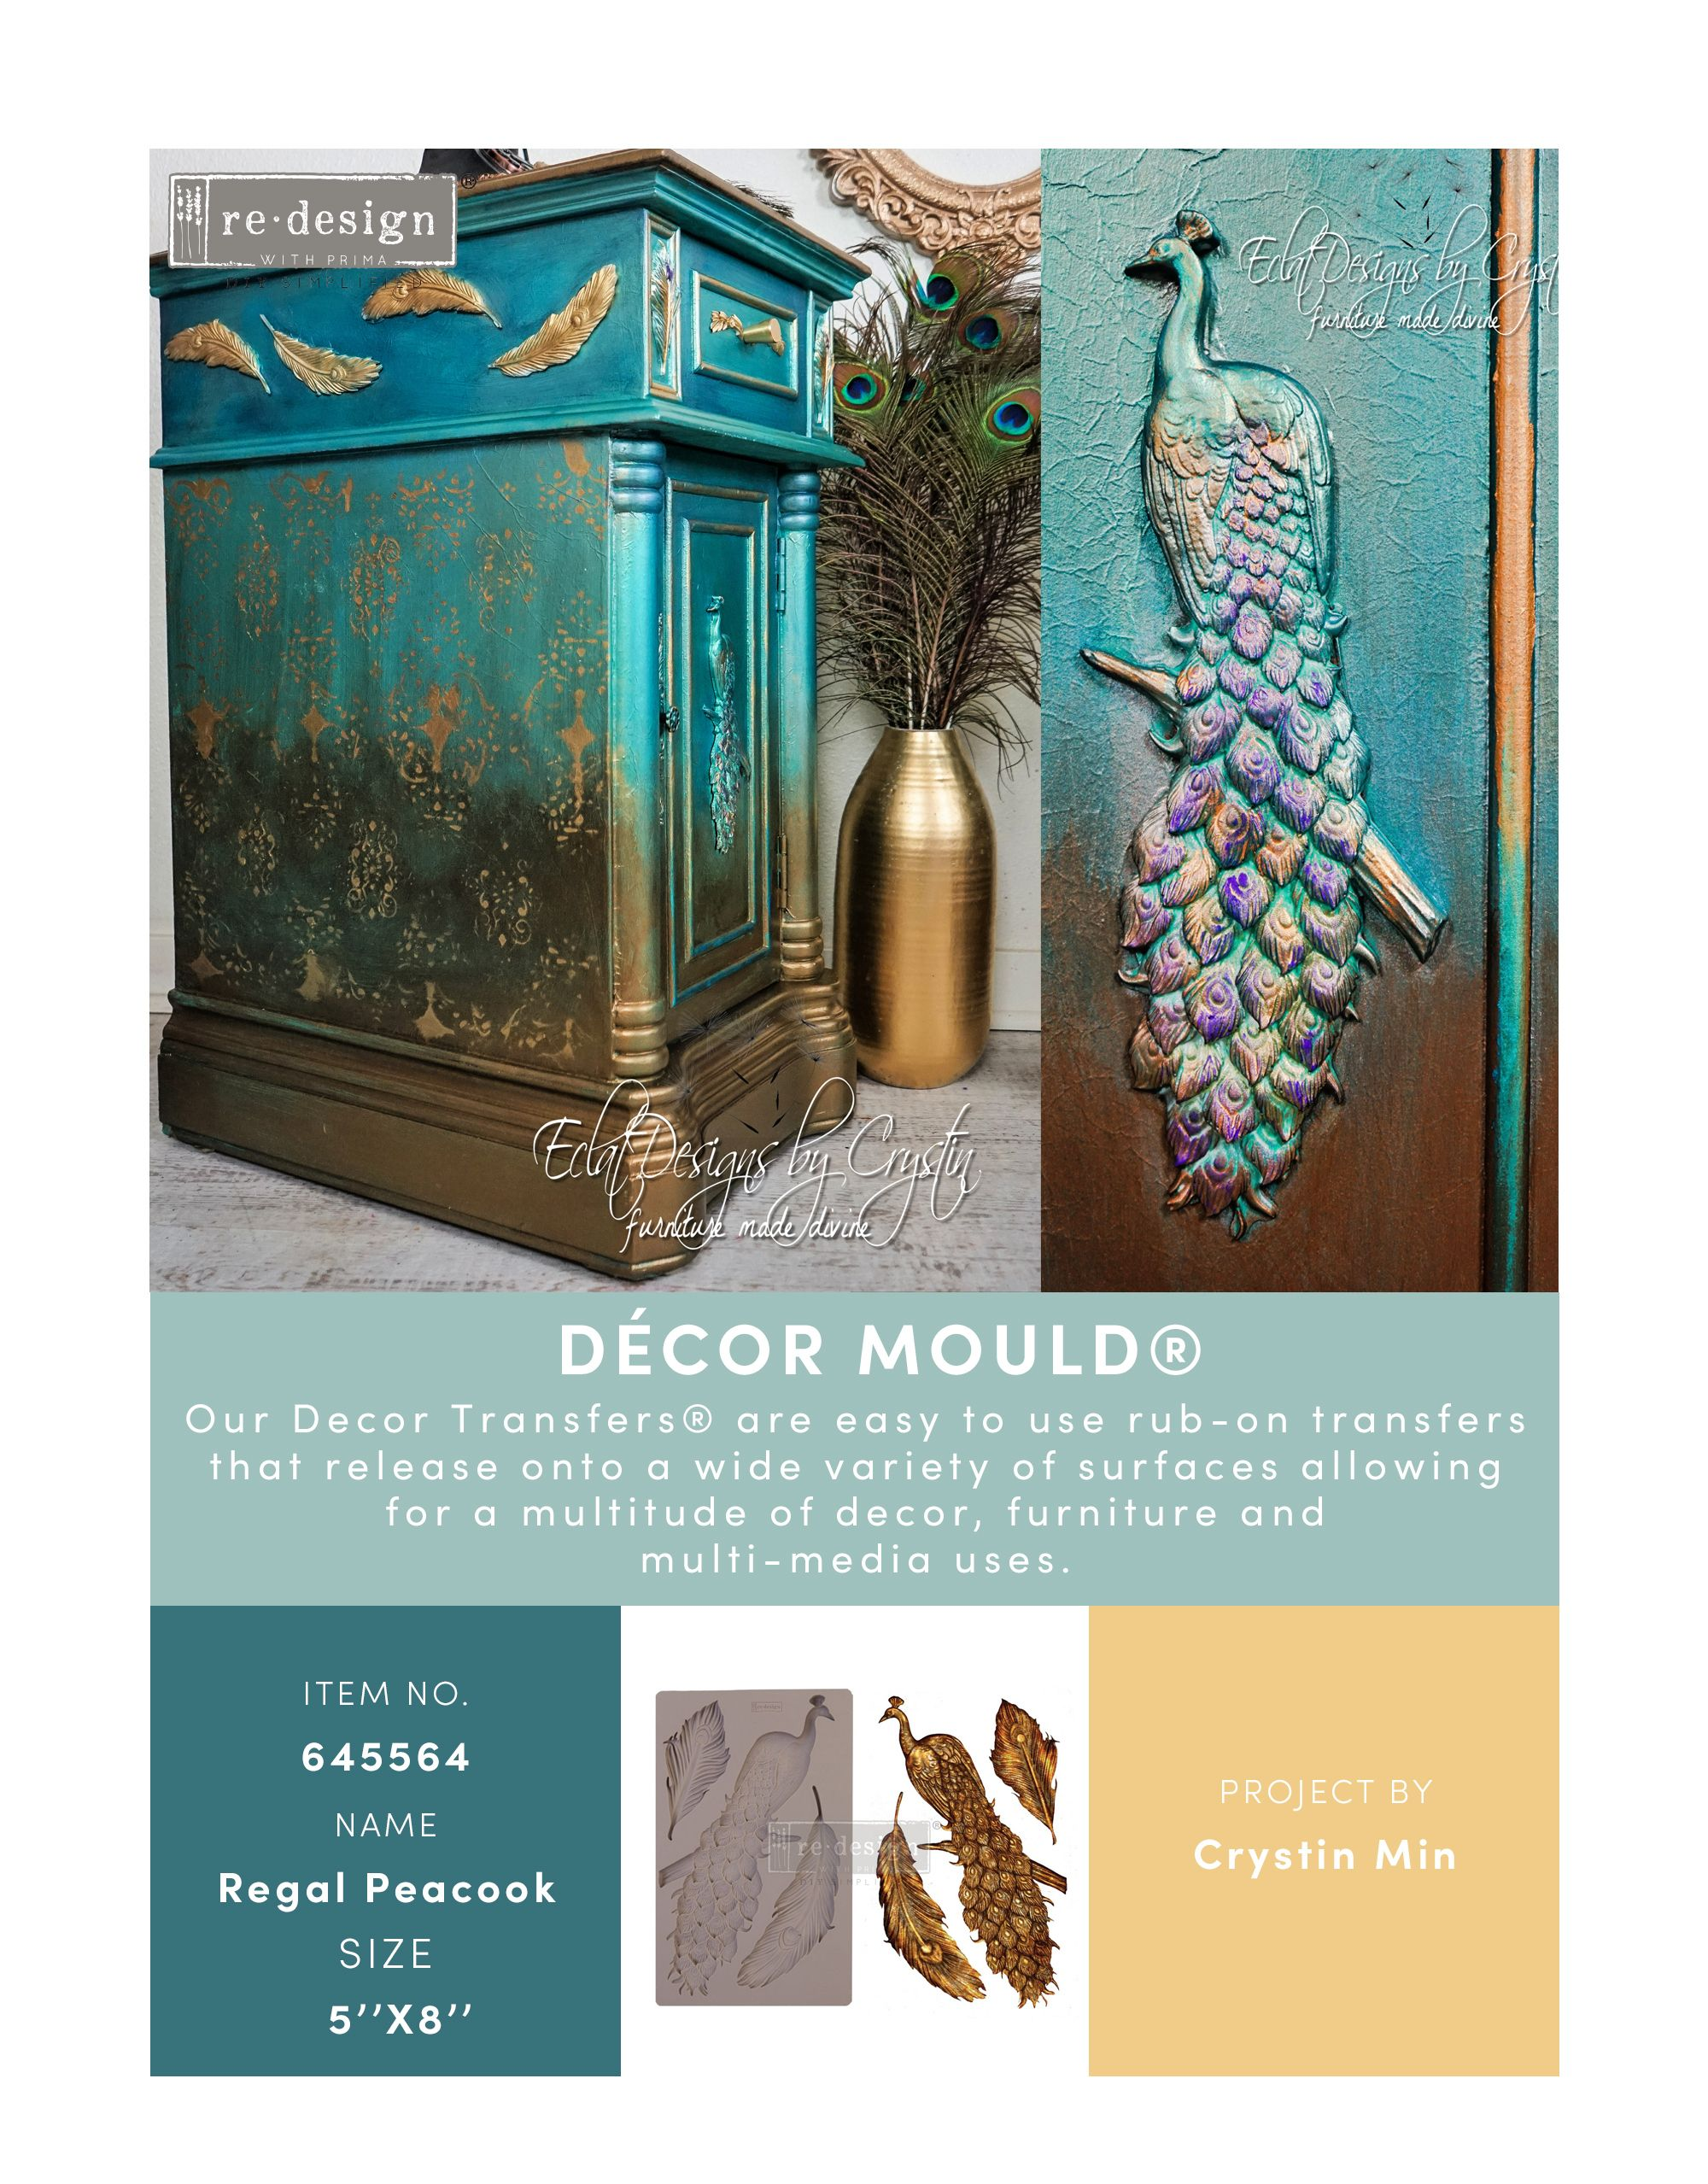 Regal Peacock Mould REDESIGN WITH PRIMA